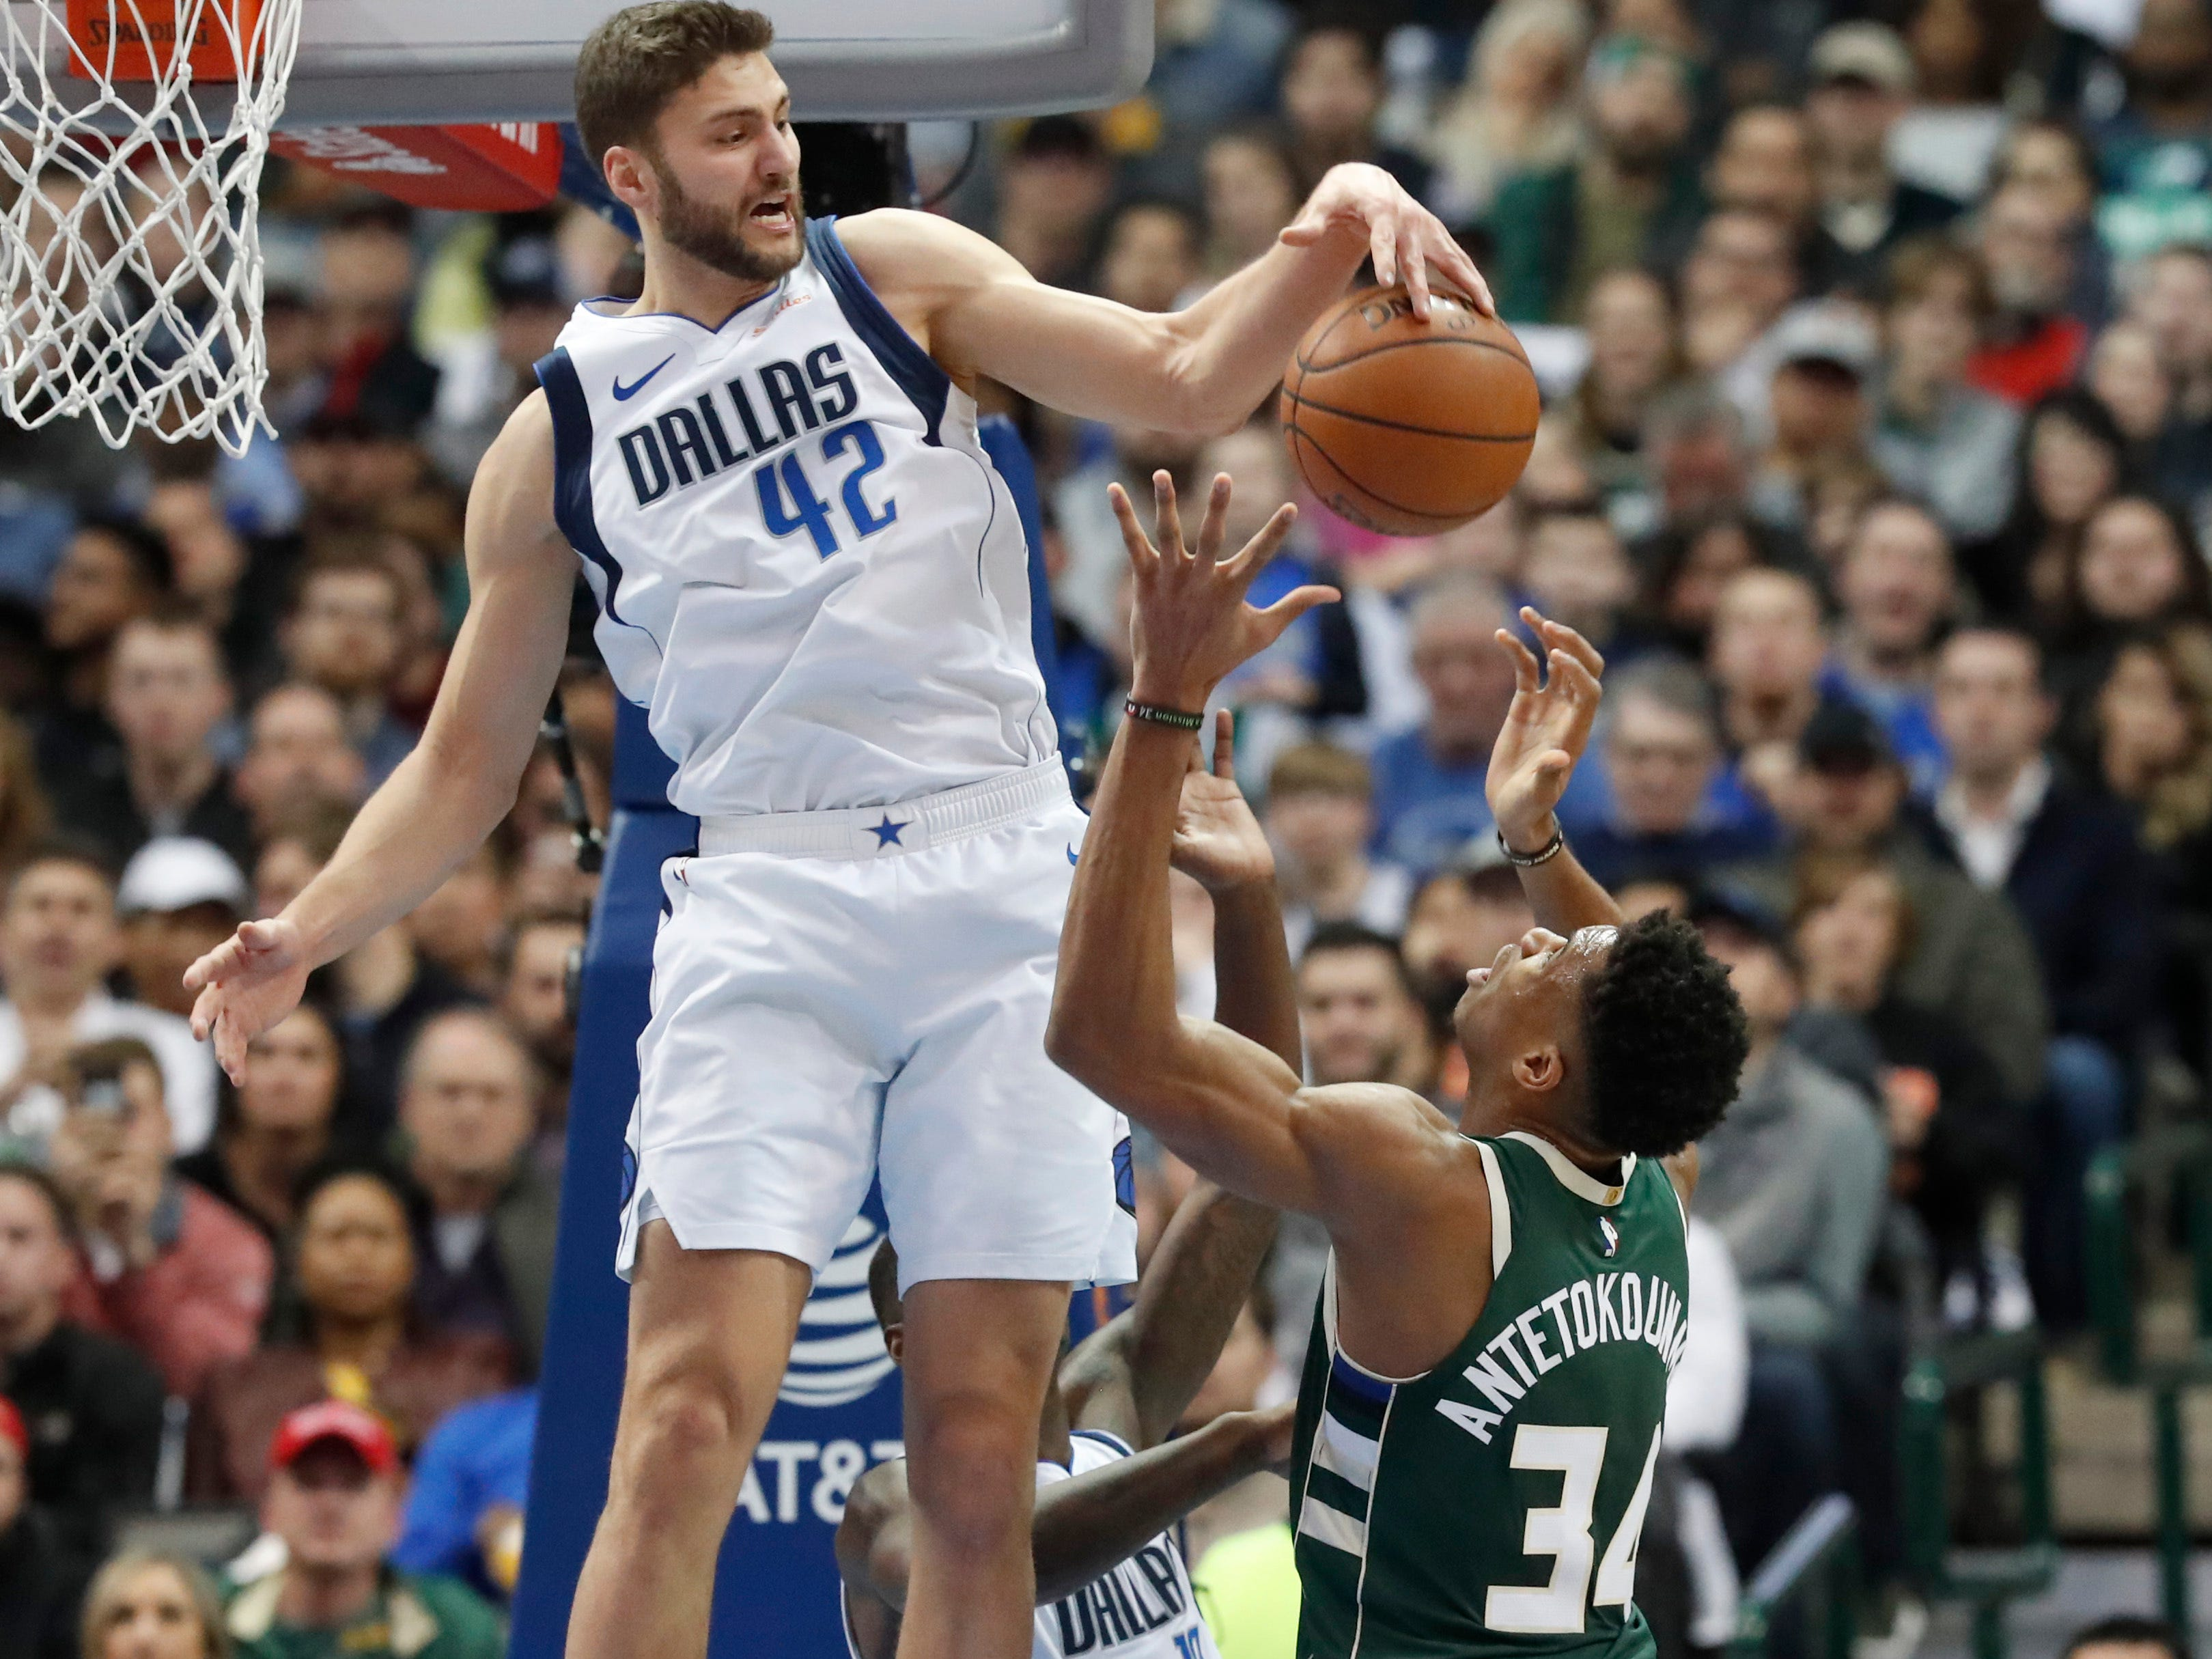 Mavericks forward Maxi Kleber stuffs a shot by Bucks forward Giannis Antetokounmpo during the first half of Friday night.